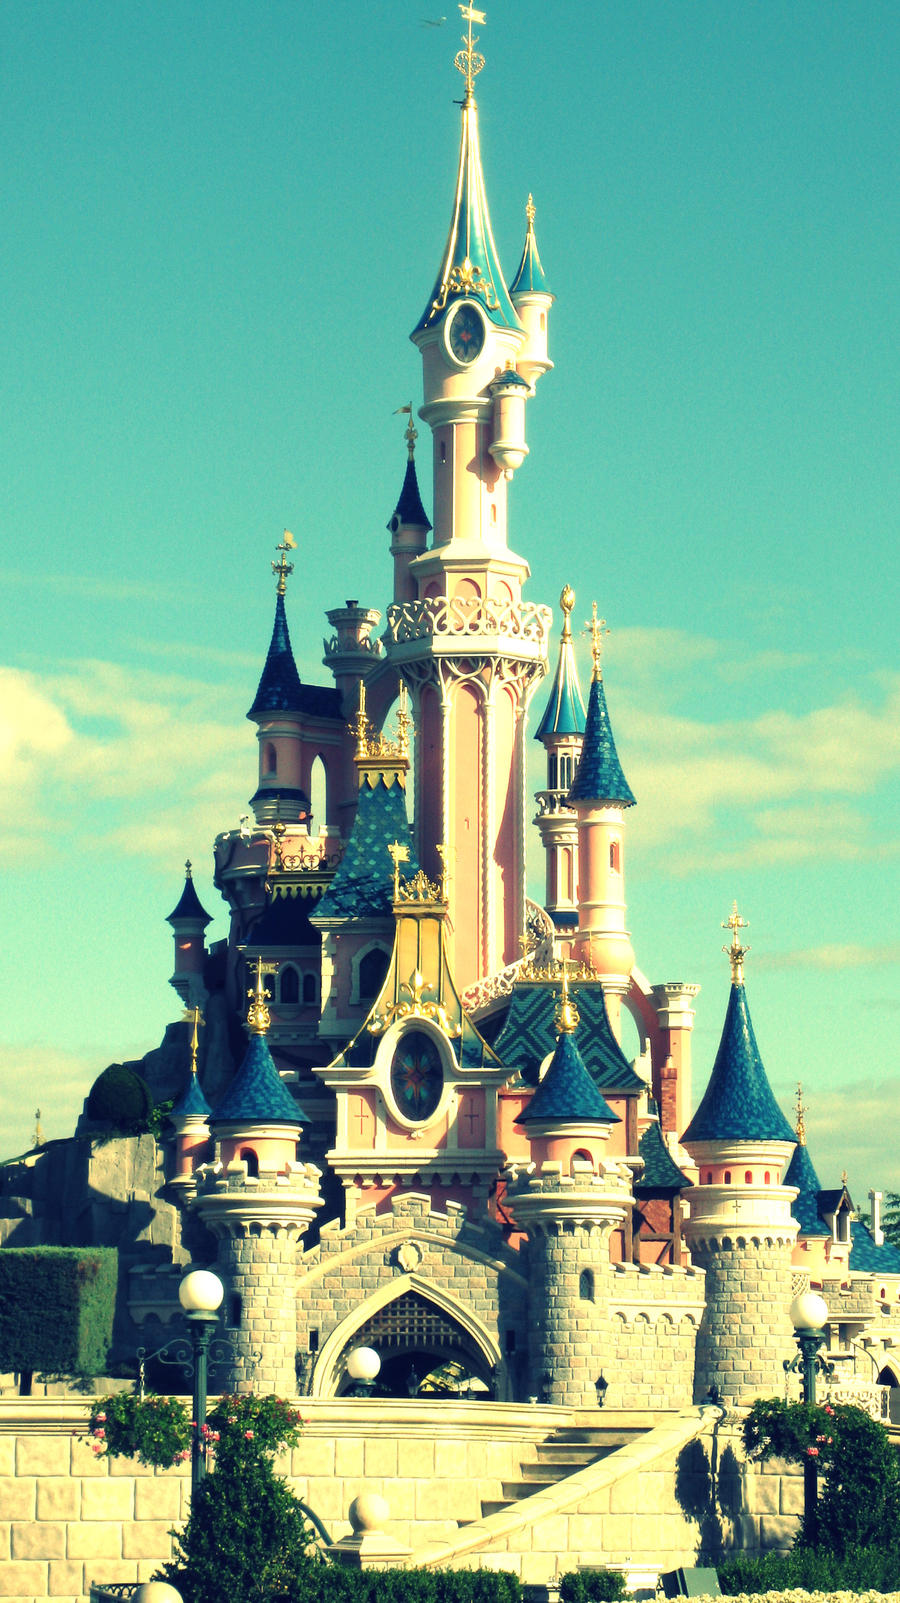 Connu Disneyland Paris - Disney Castle by madubachi on DeviantArt IT04